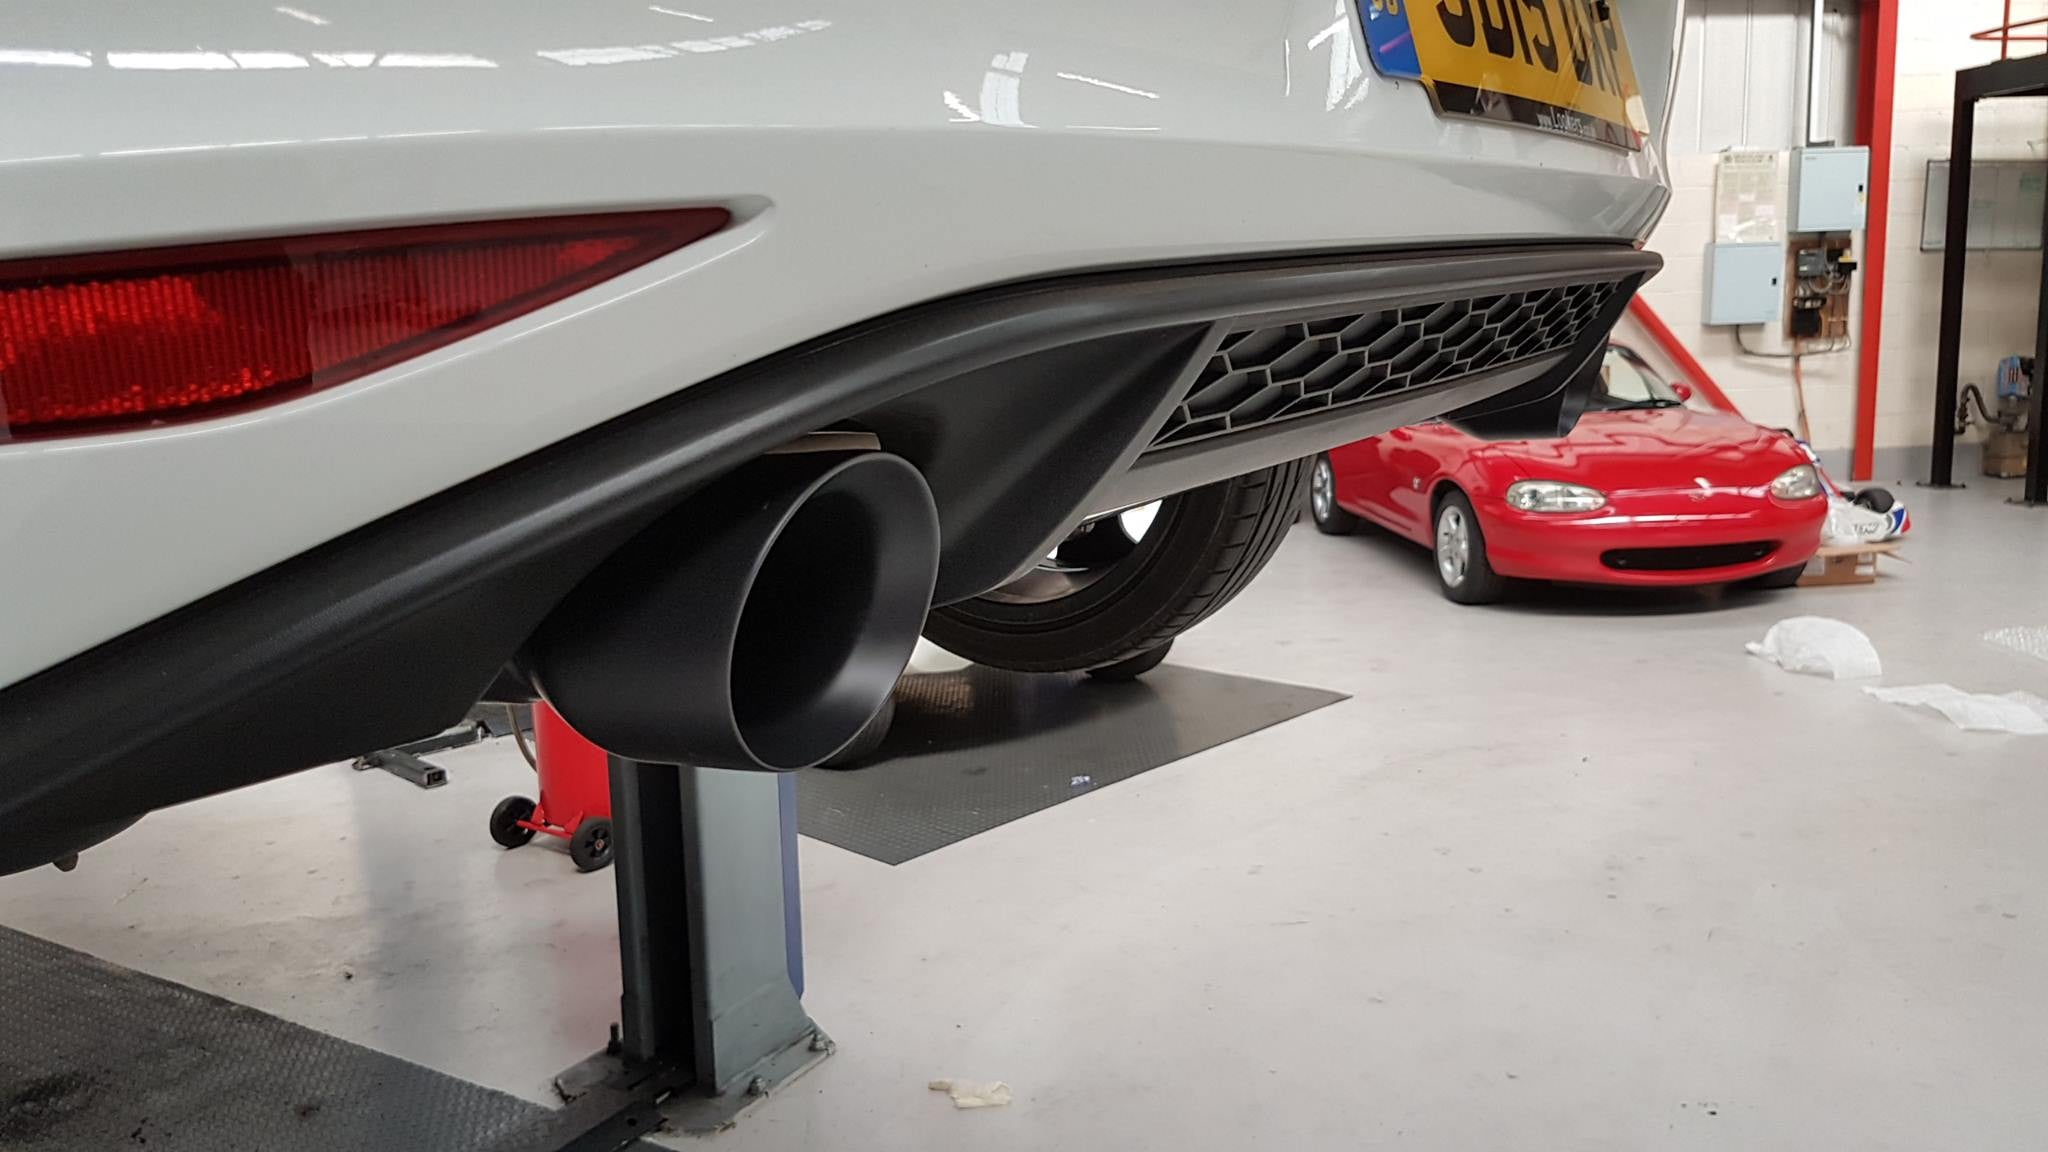 Mk7 Golf GTI - Milltek cat-back system